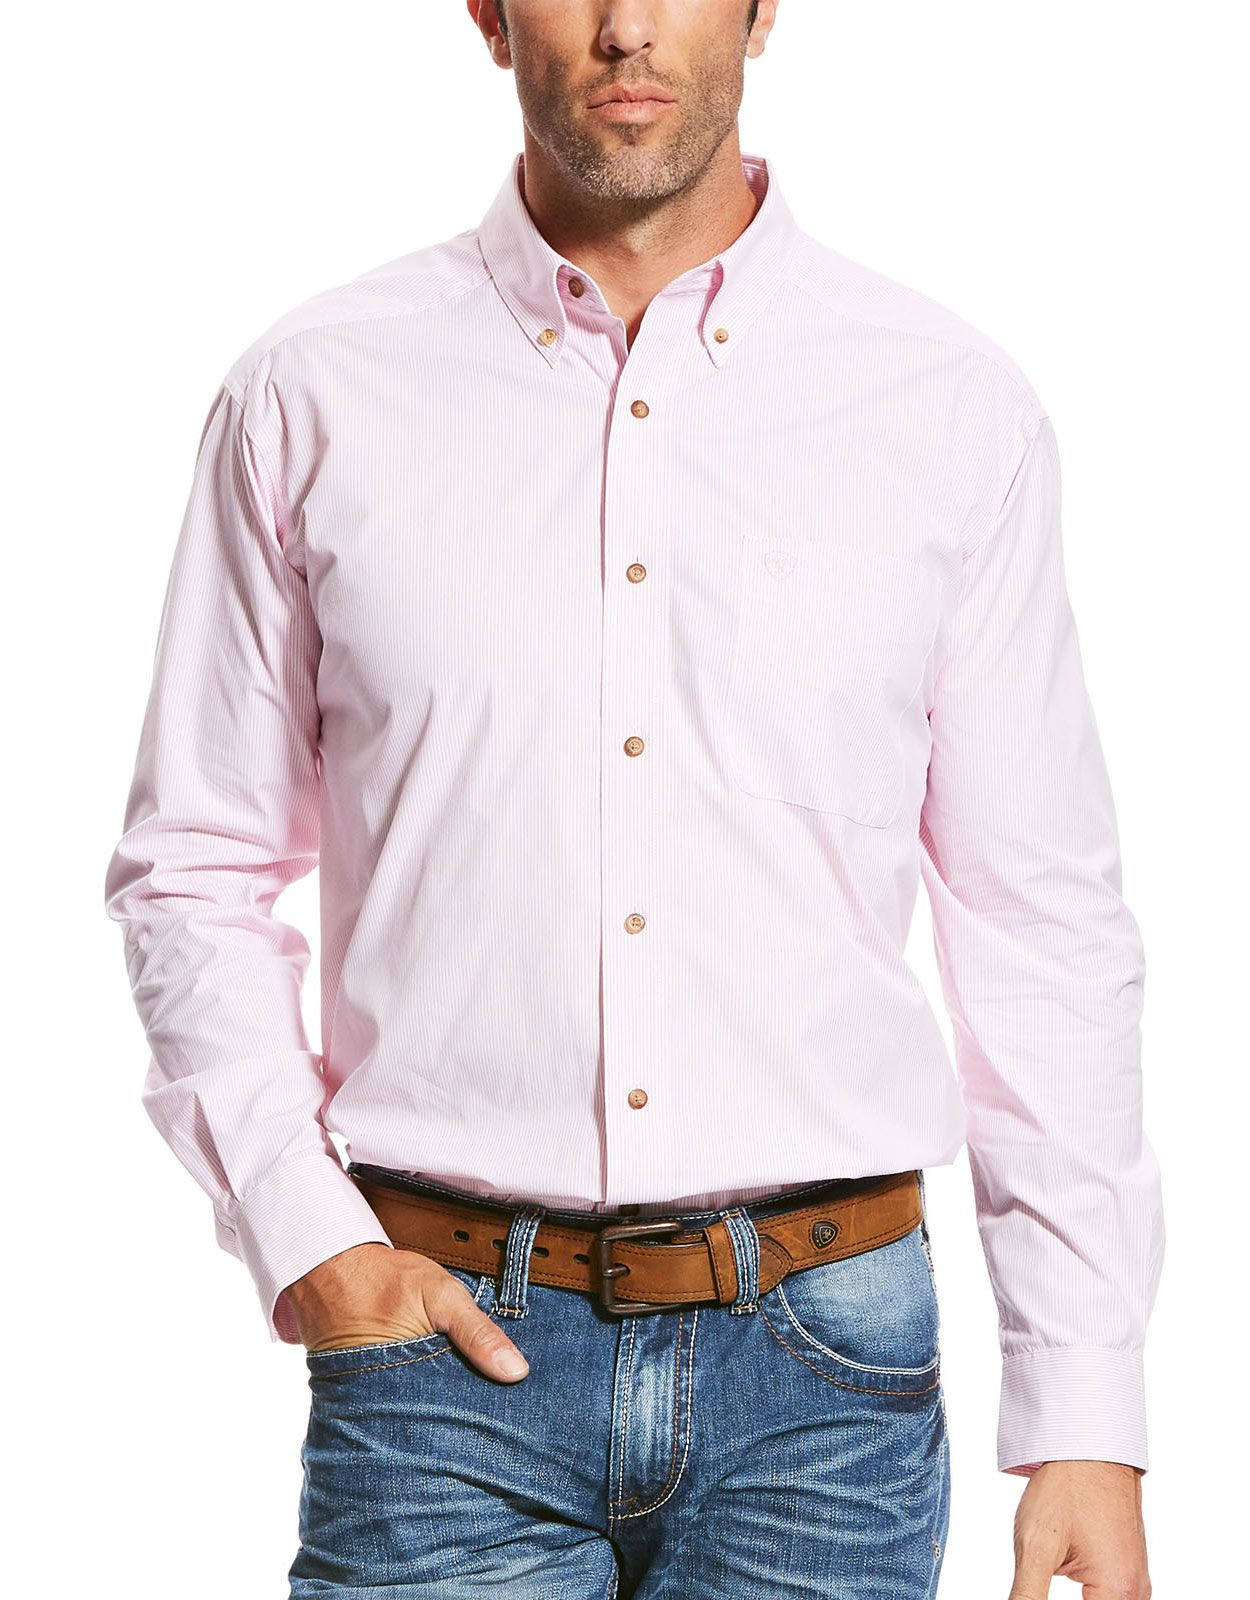 Ariat Men's Pro Series Classic Fit Long Sleeve Stripe Button Down Shirt - Prism Pink